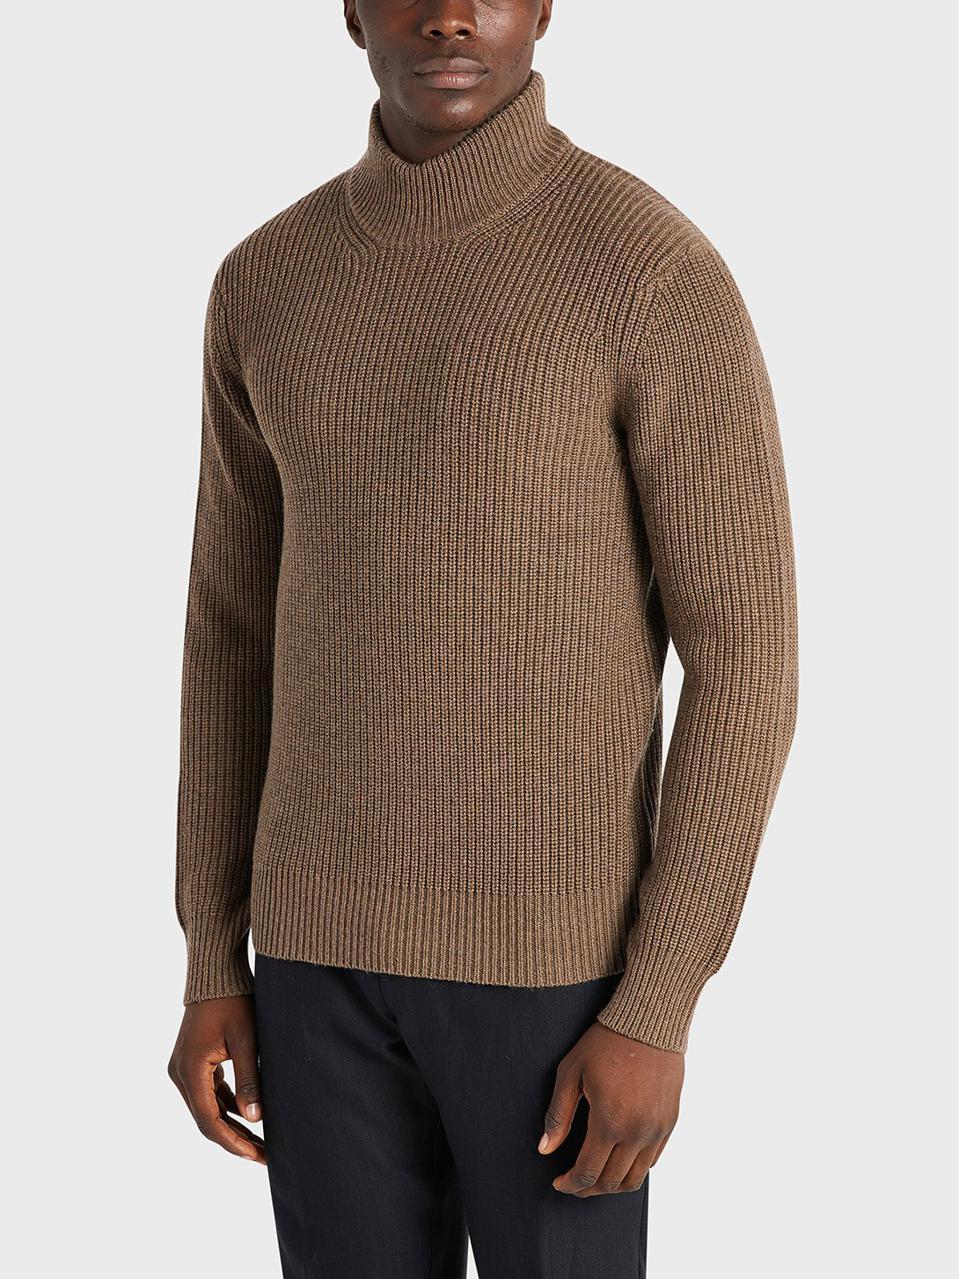 Introducing the Acton Mock Neck Sweater, it's classy yet casual and made from a soft, fine knit wool. Featuring a ribbed mock neck, cuffs, and hem, this sweater is universally flattering. Offered in 4 color-ways, Off-White, Charcoal, Navy & Coffee